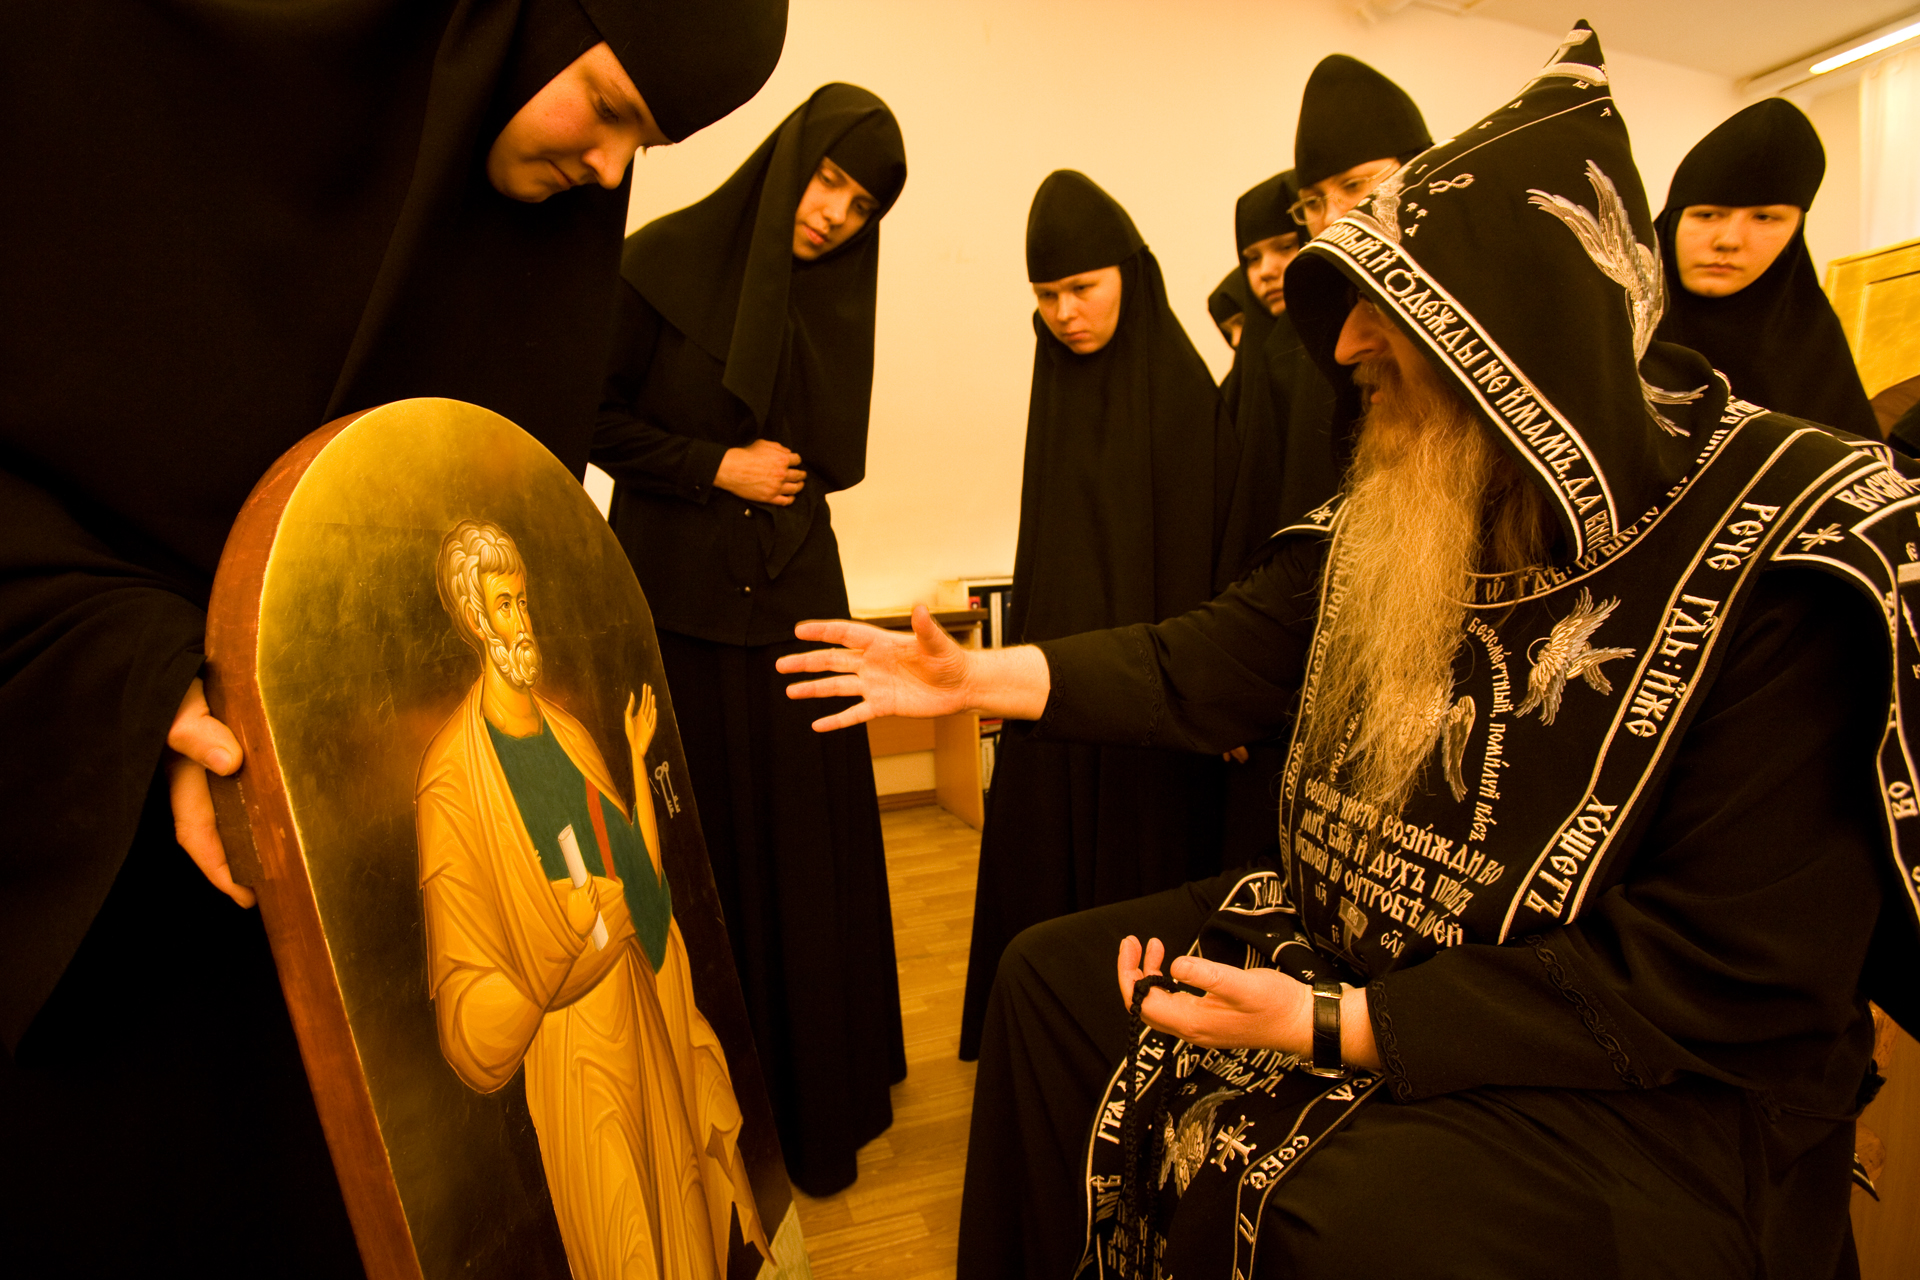 Judgment day arrives at Novo-Tikhvinsky cloister when Father Abraham sits down to critique icons painted by resident nuns.  Yekaterinburg, Russia